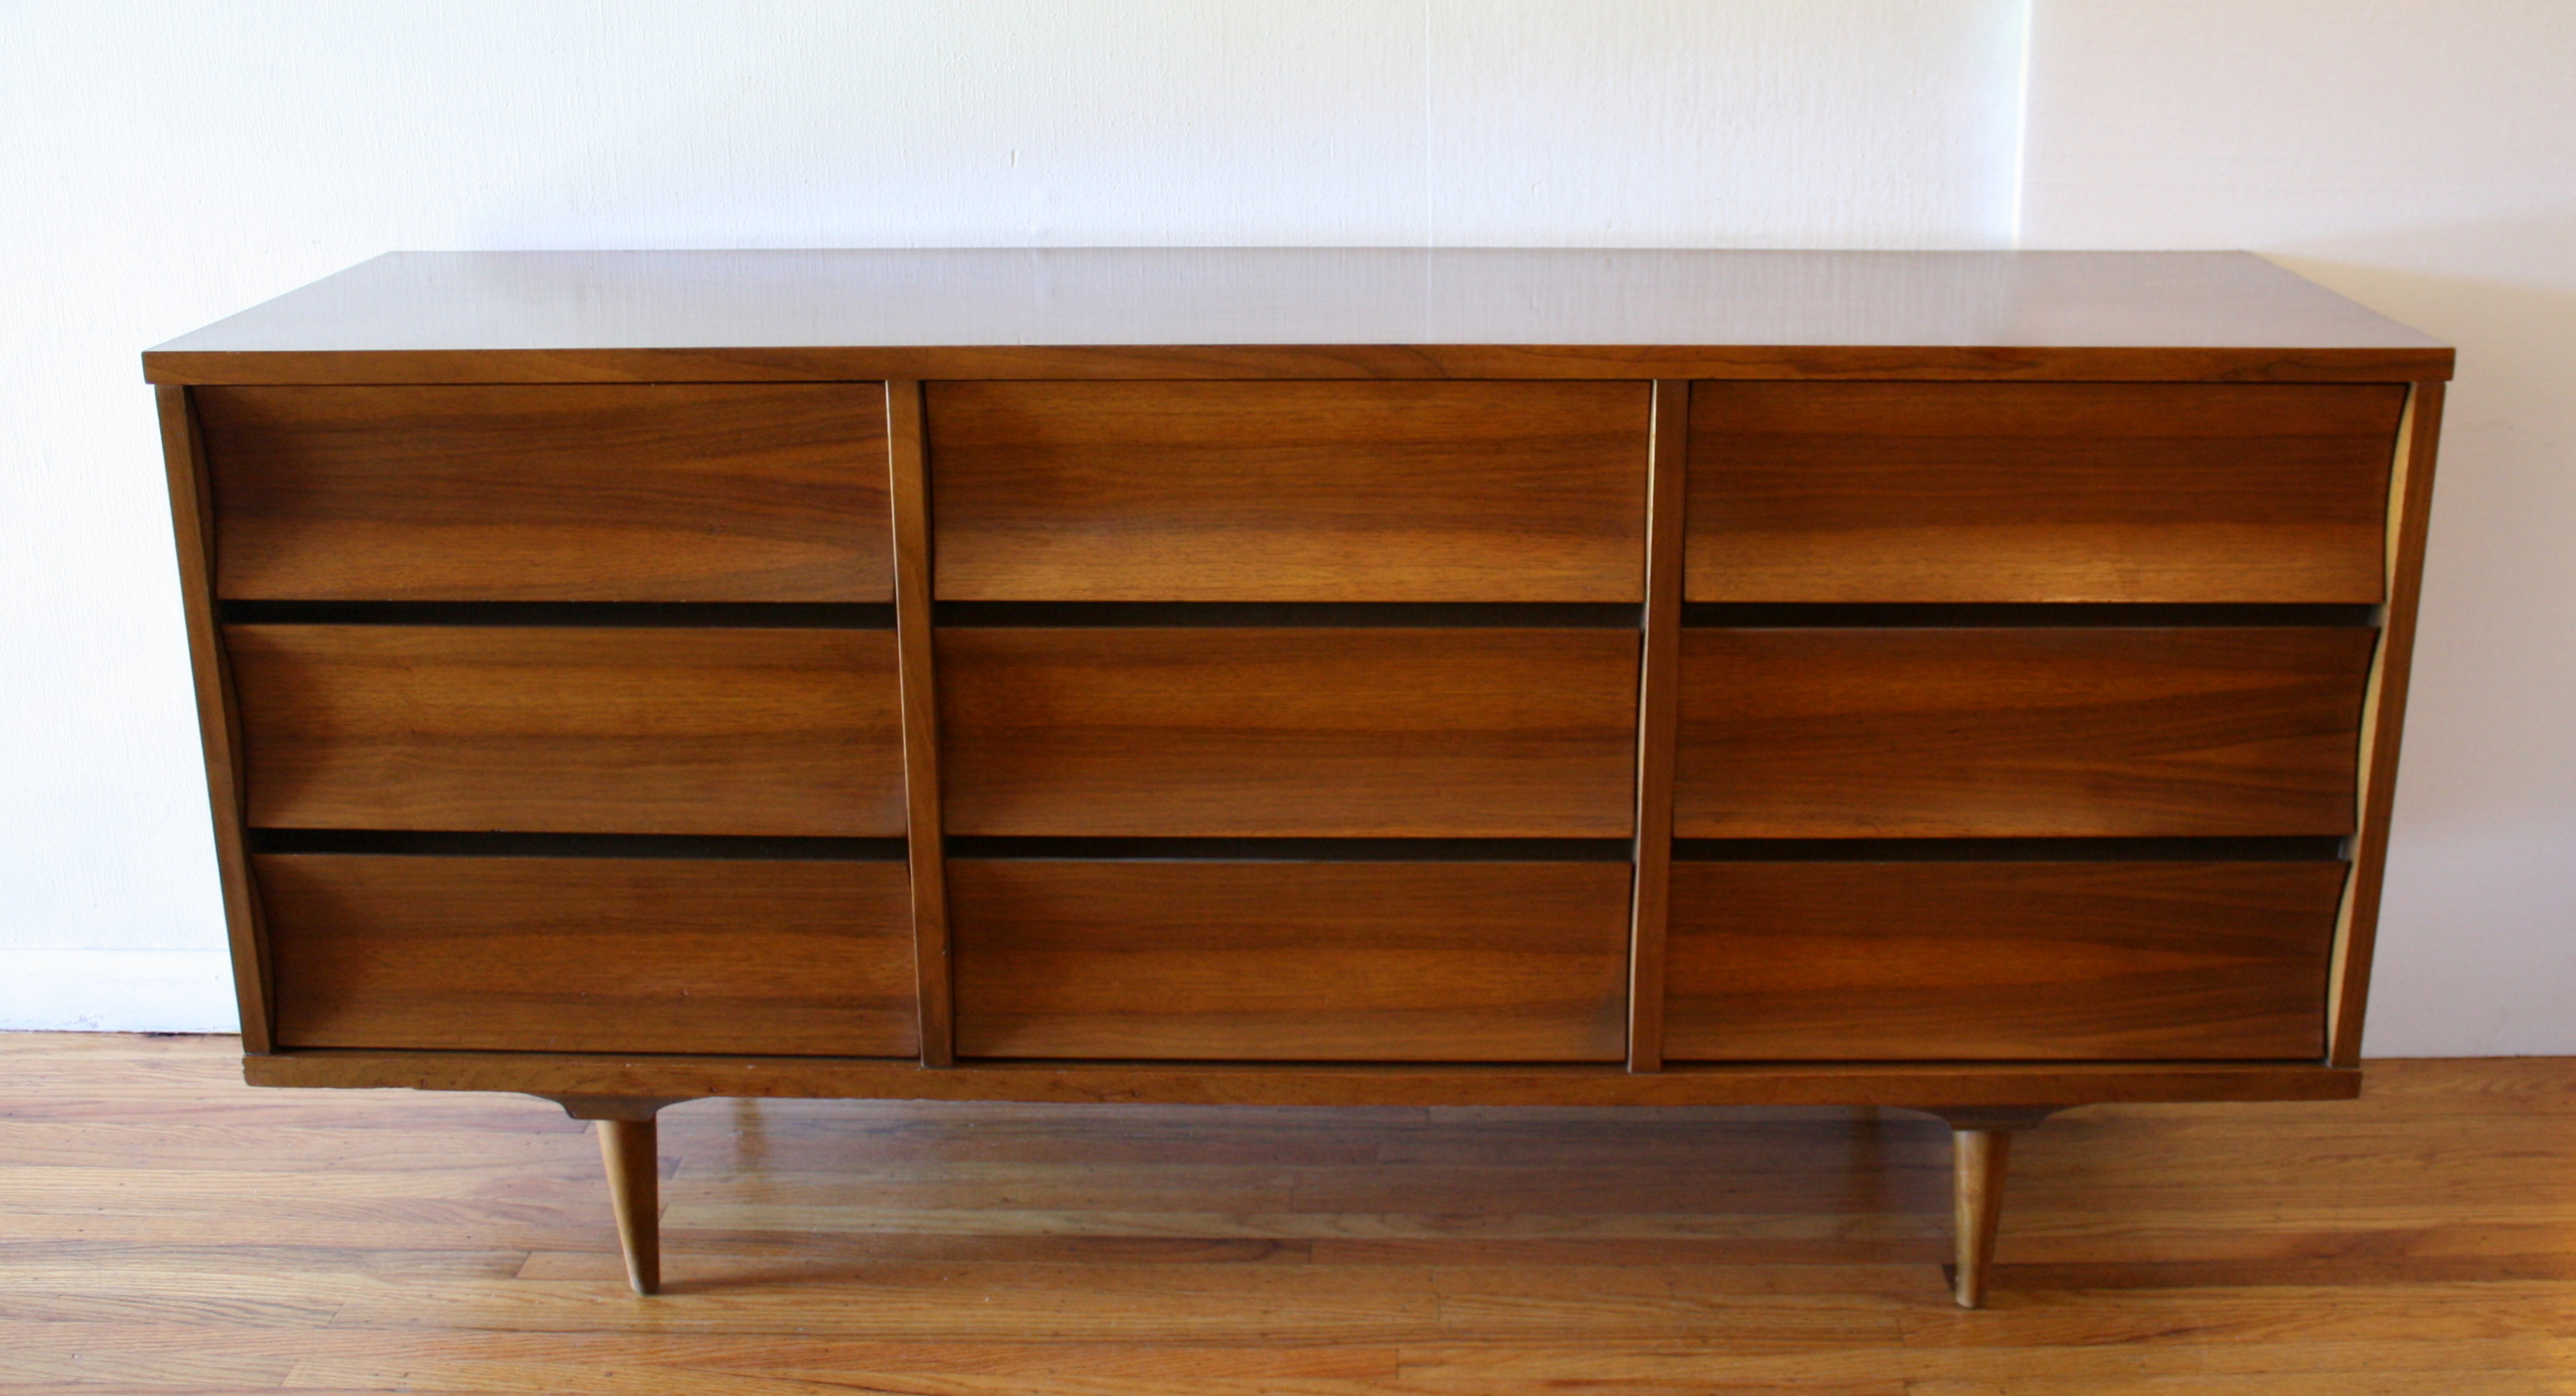 Johnson Carper 9 drawer low dresser credenza 3.JPG